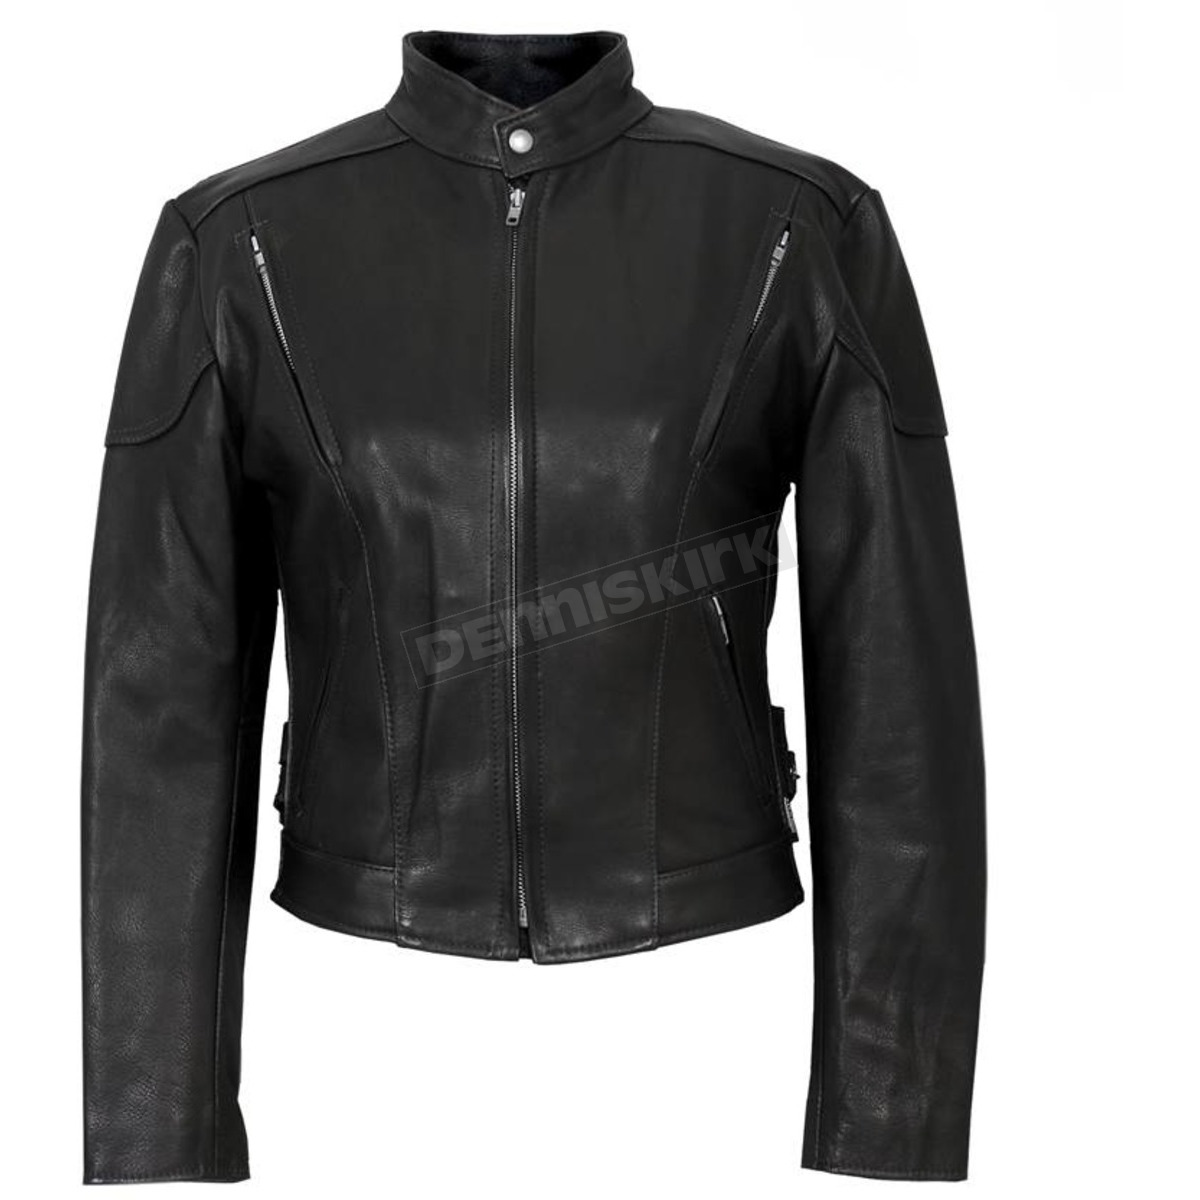 American made leather motorcycle jackets